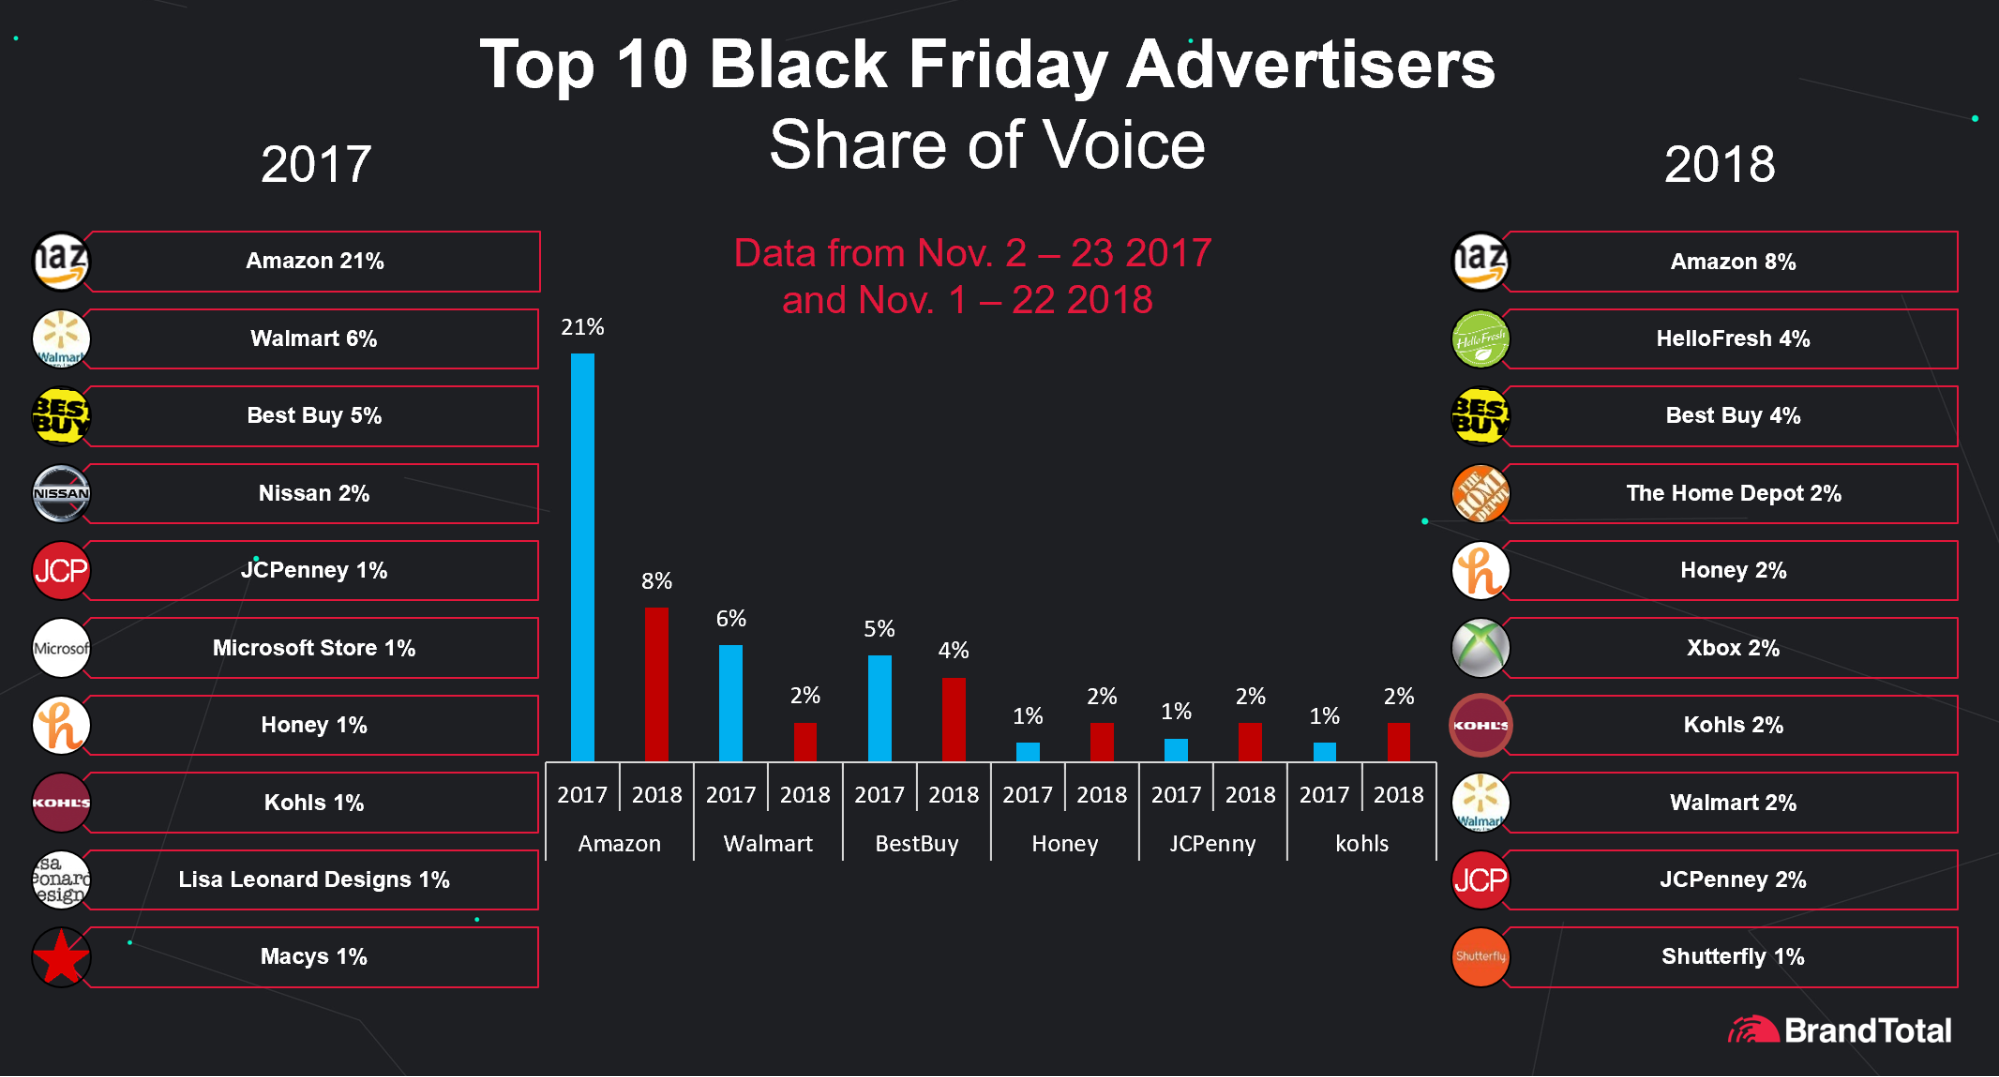 Top 10 Black Friday Advertisers on Facebook by Share of Voice